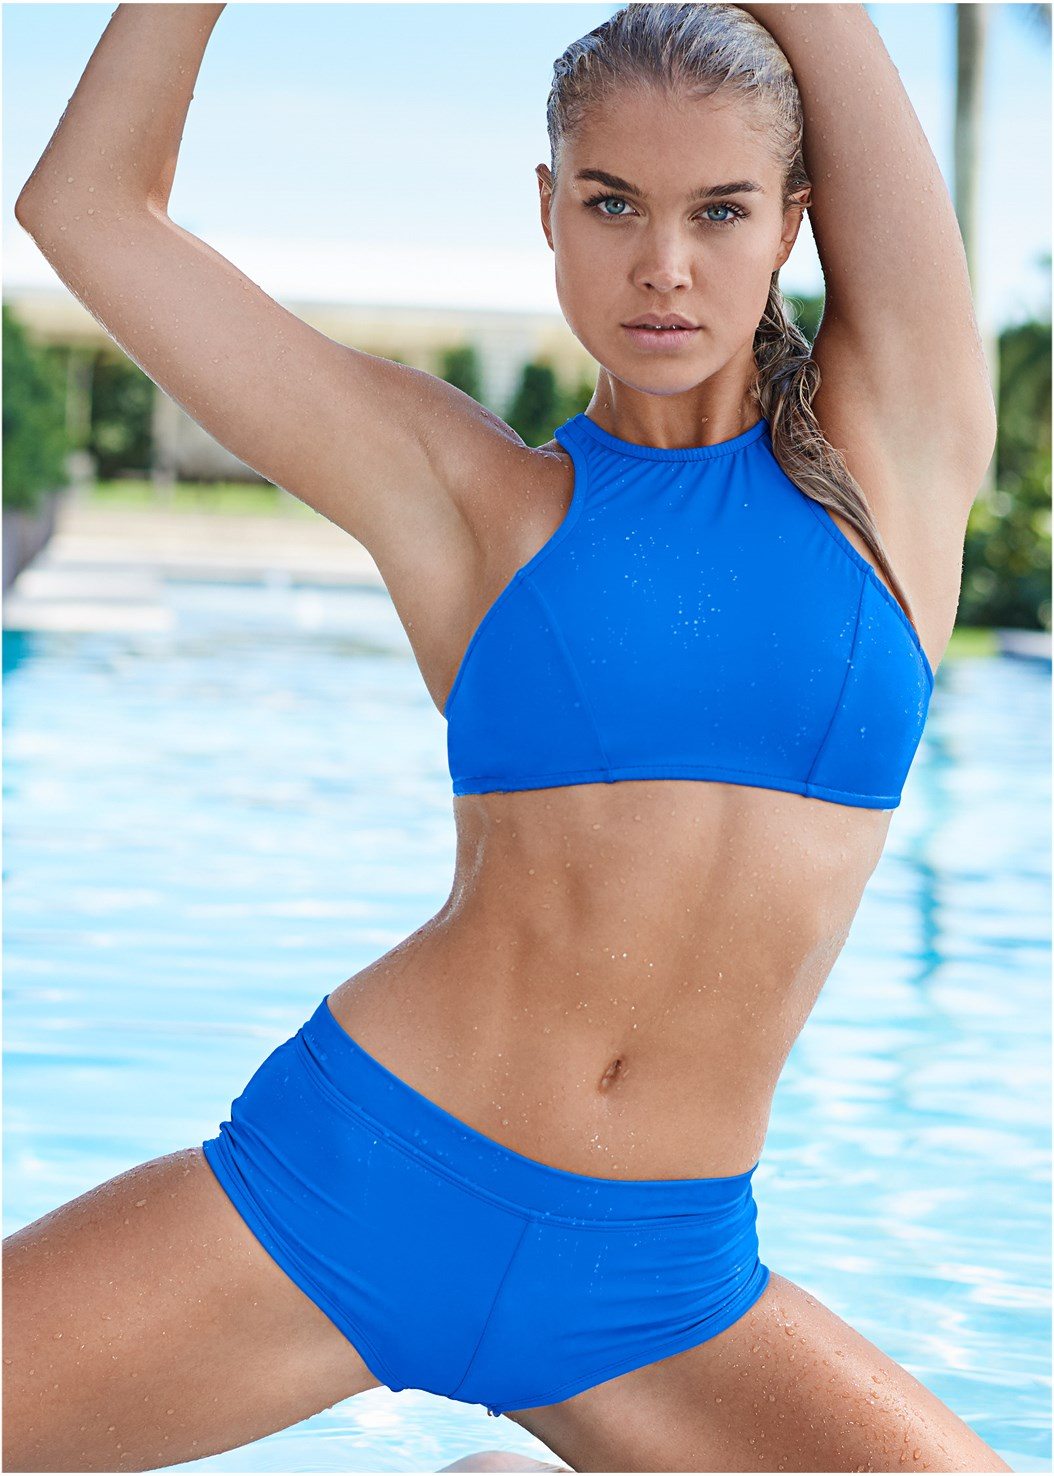 Sports Illustrated Swim™ High Neck Sport Top,Sports Illustrated Swim™ Cheeky Short,Sports Illustrated Swim™ Low Rise Brief,Sports Illustrated Swim™ Cut Out Sides Bottom